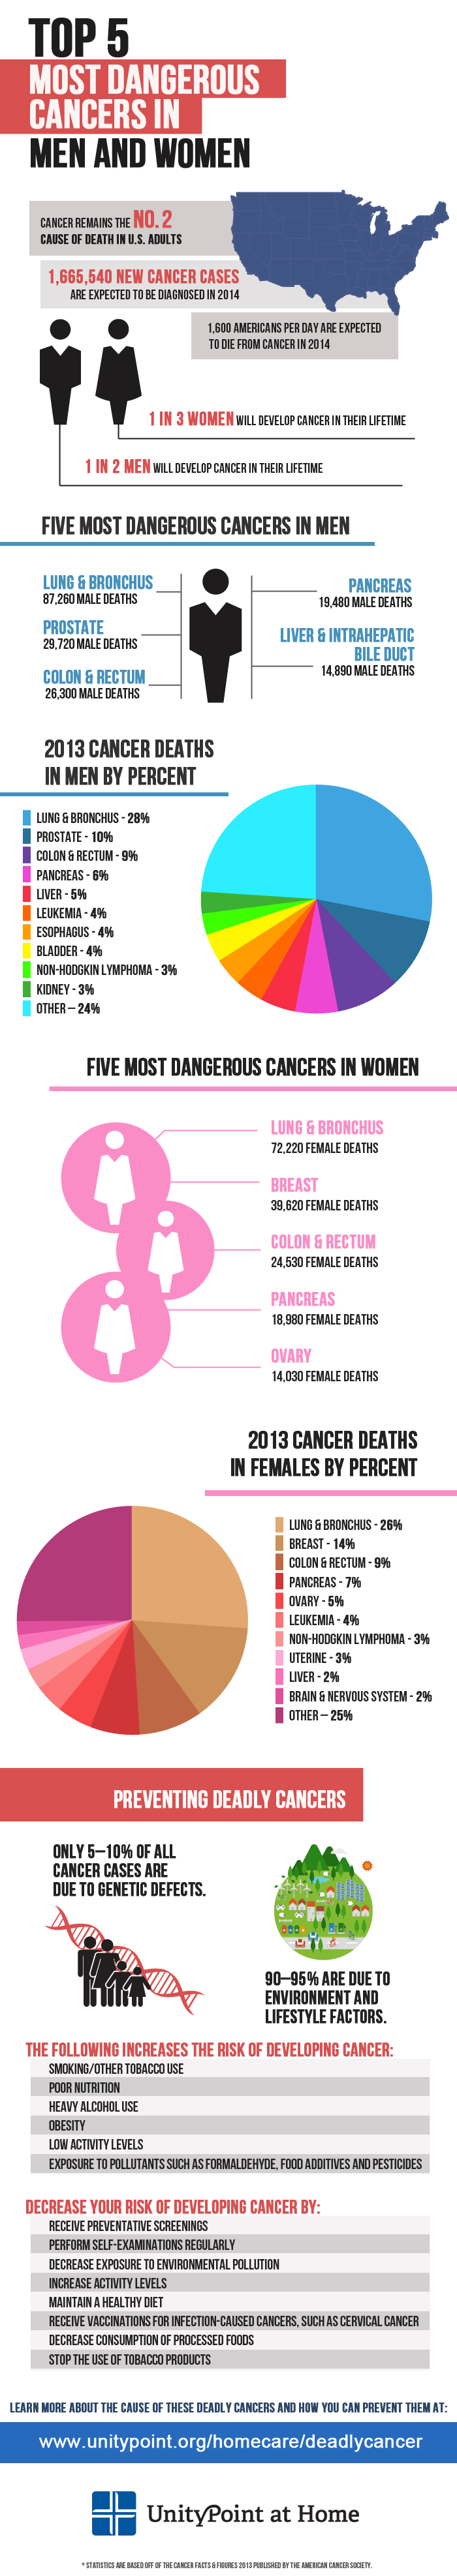 Dangerous Cancers Infographic by Blue Compass